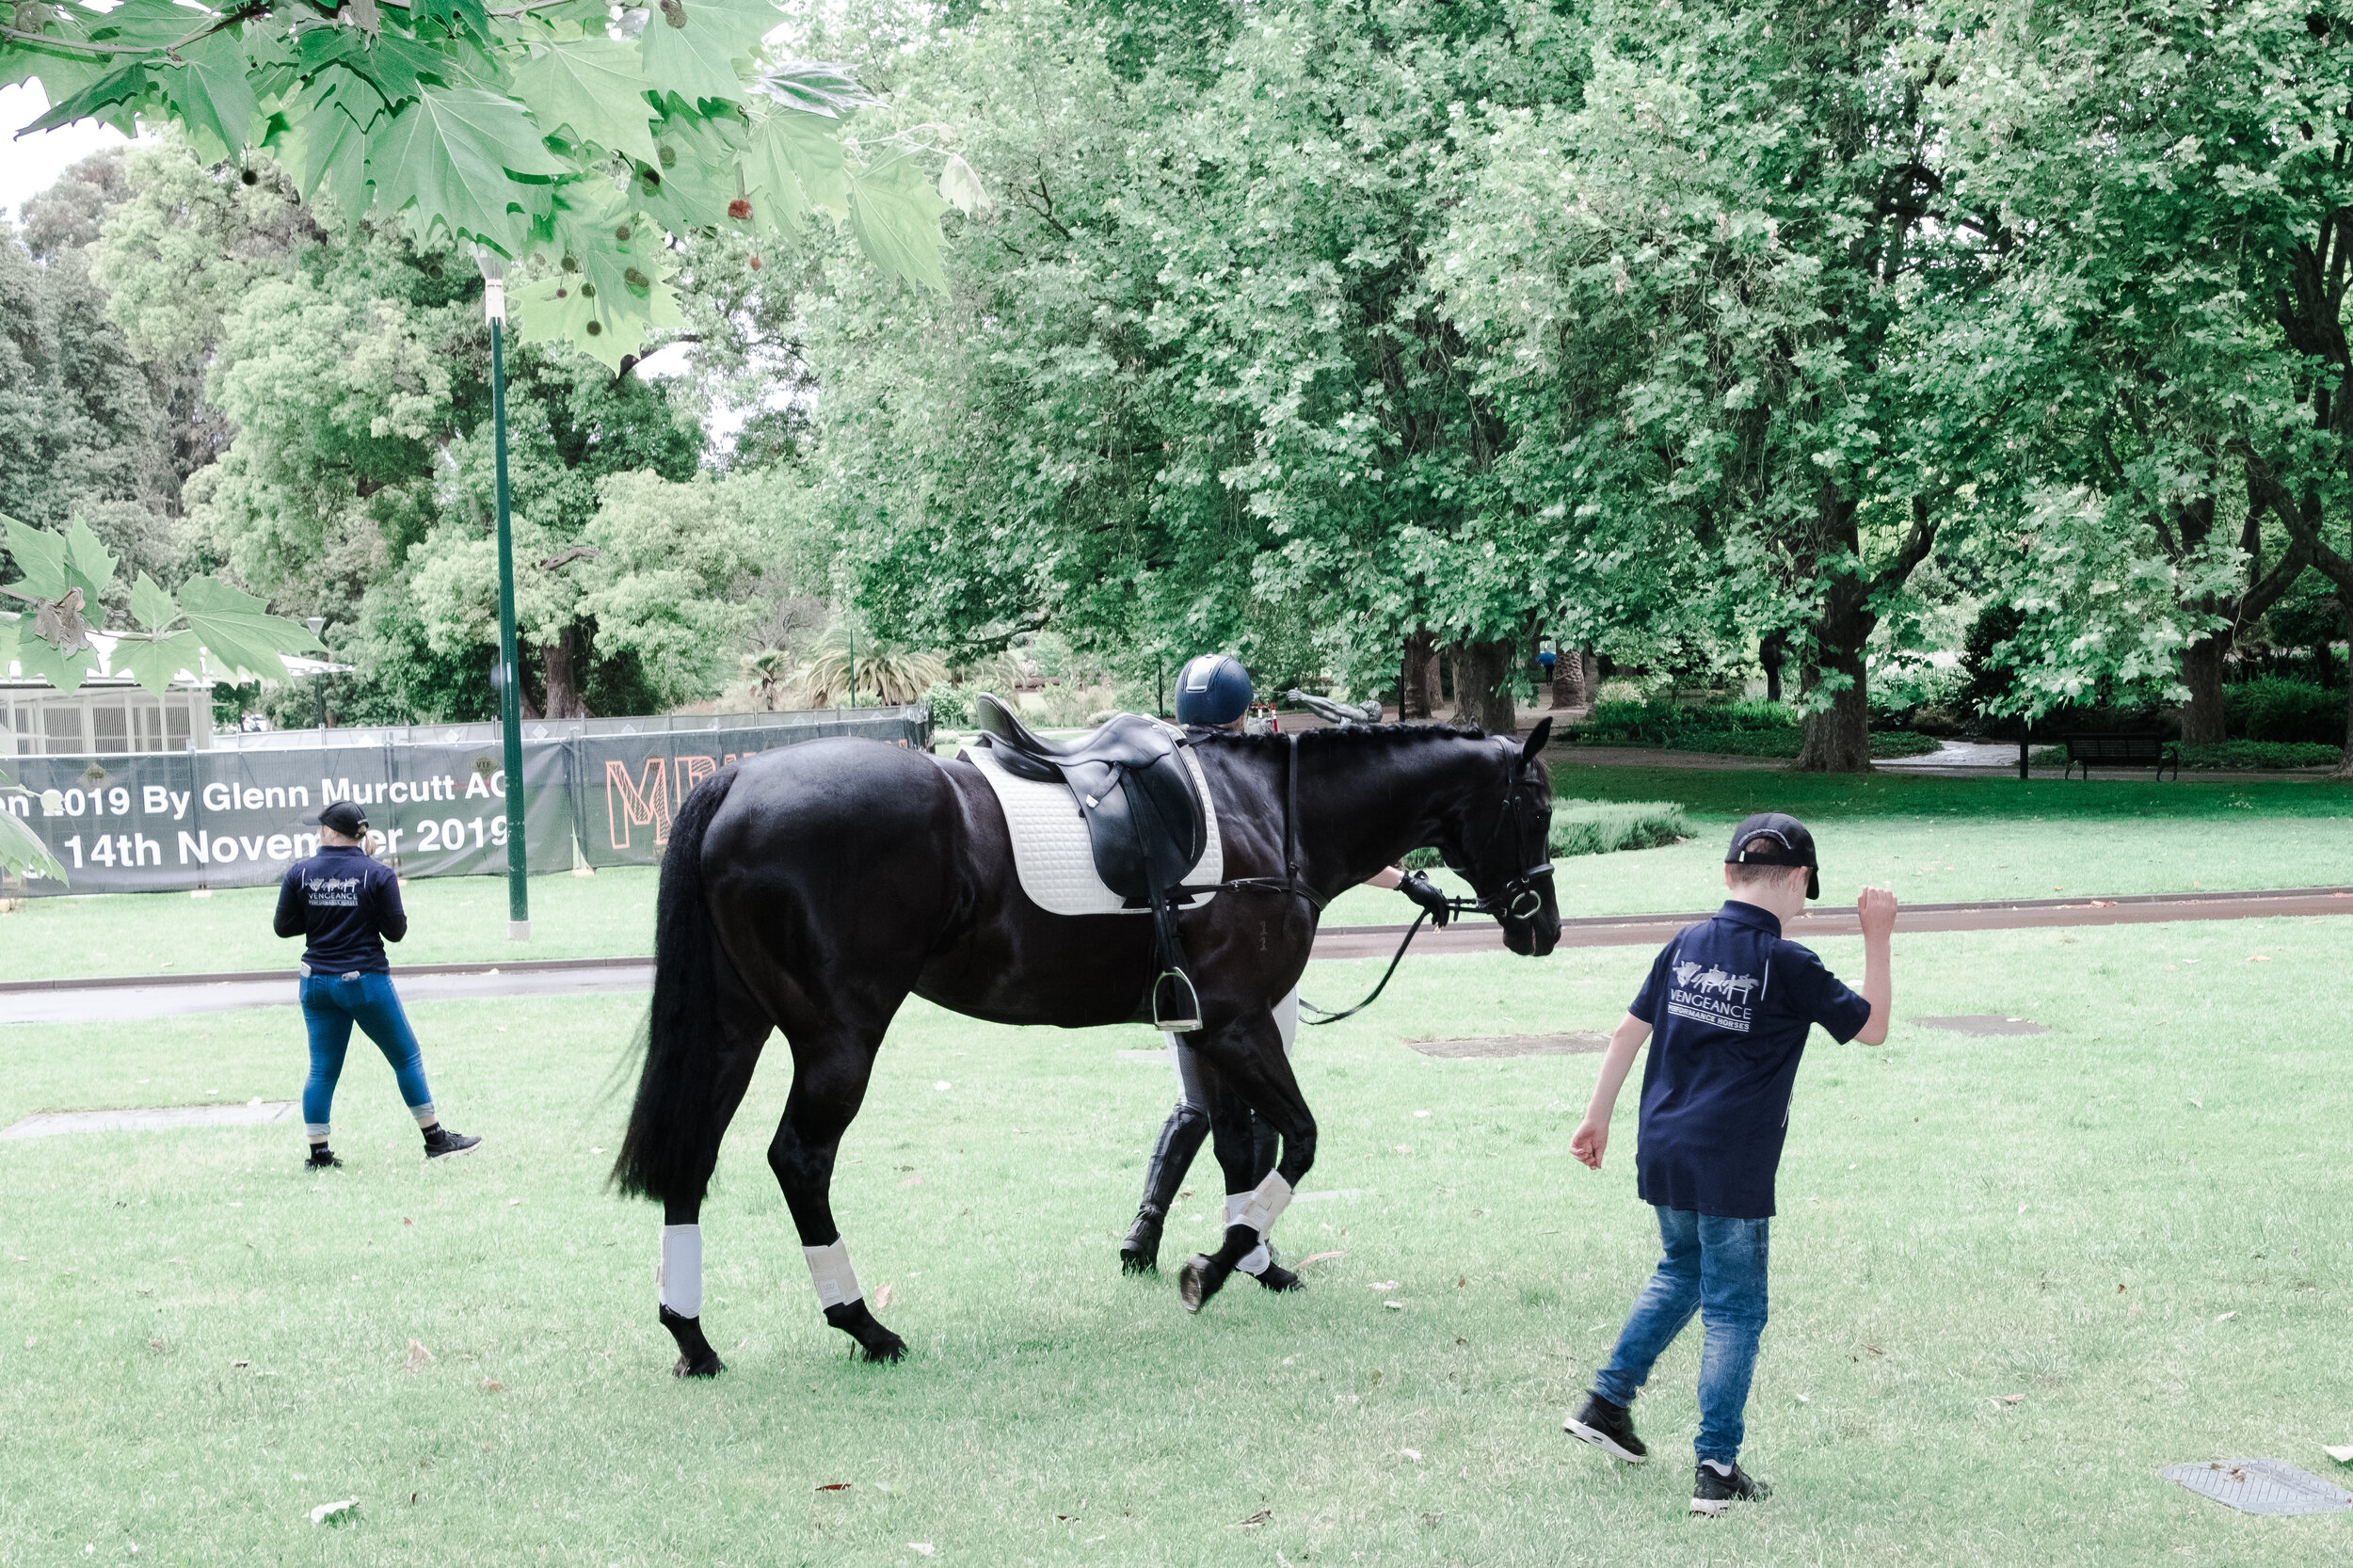 A rider walks their horse around the park after the parade. (Photo: Jeremy Gan)